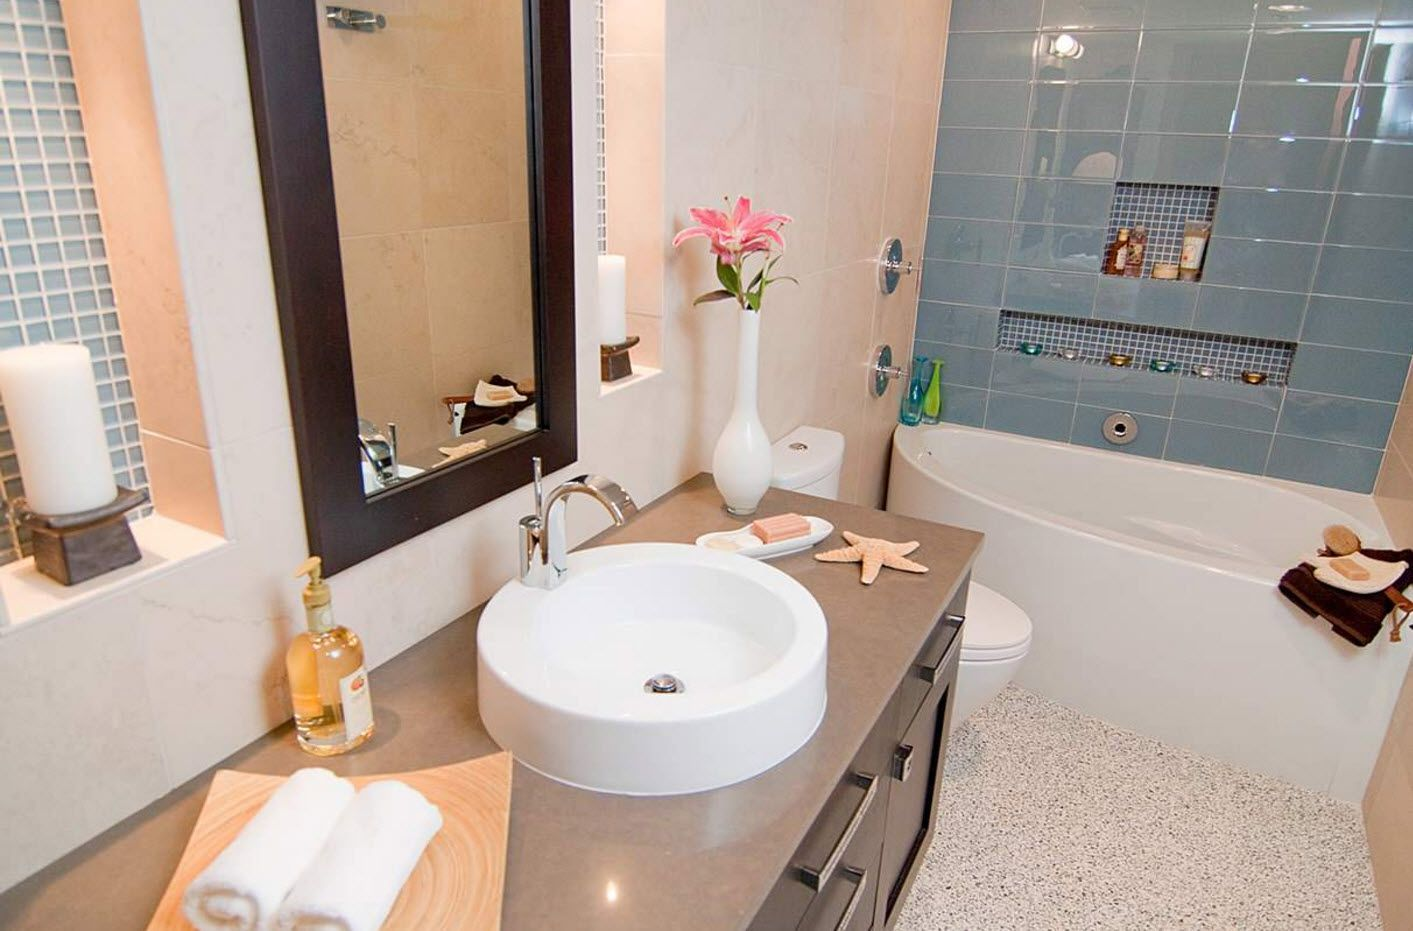 Marine style and eco details in small modern bathroom